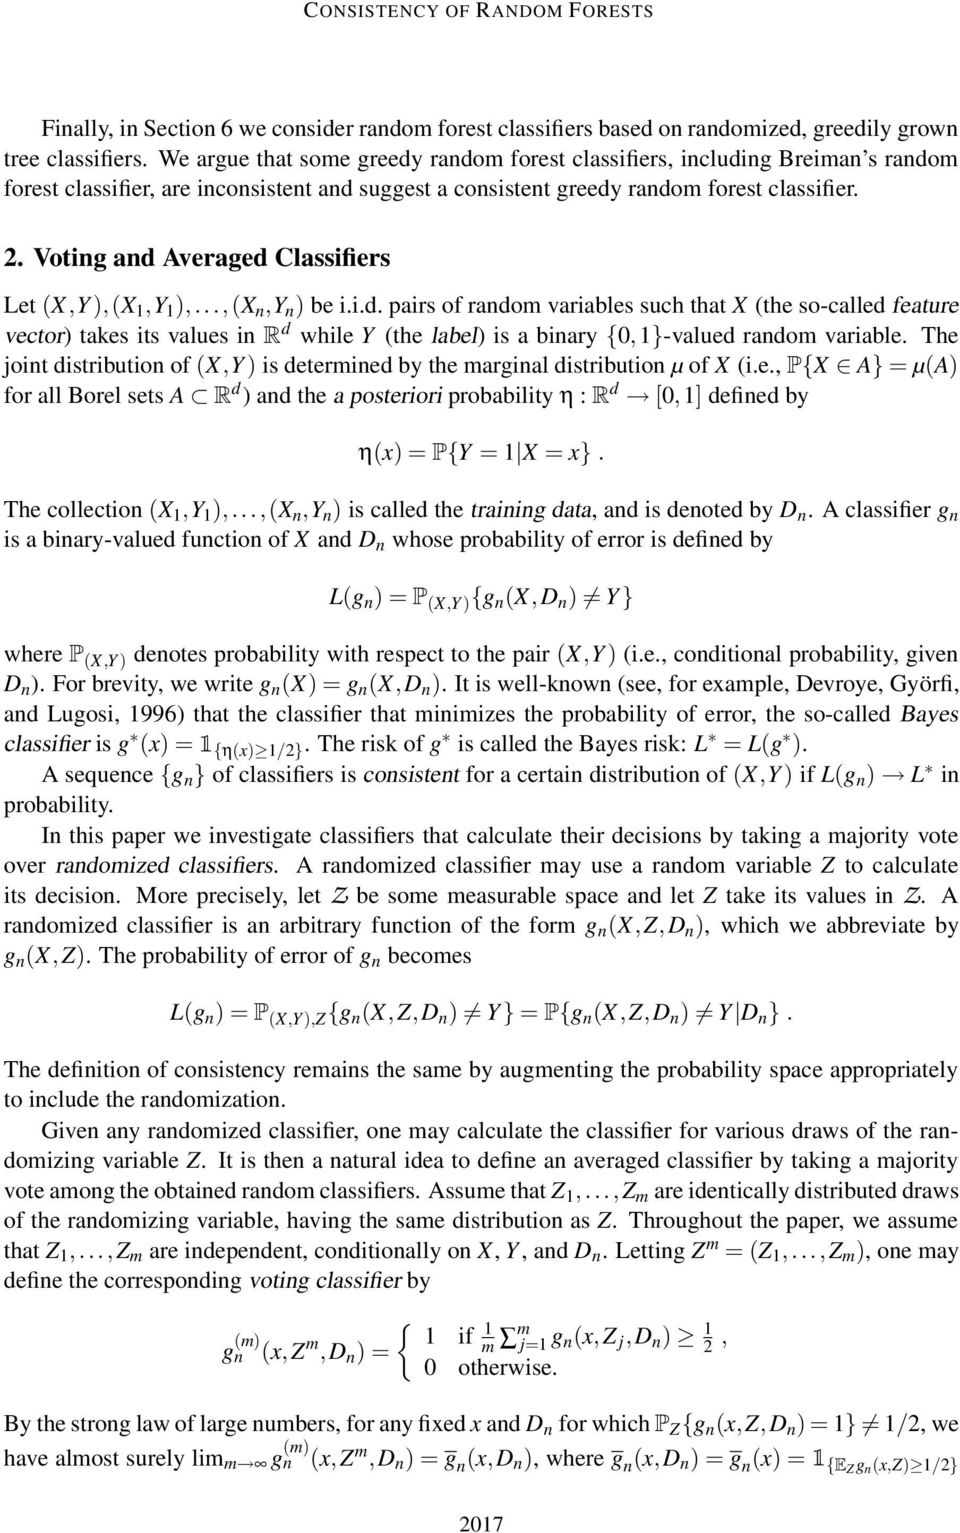 Votig ad Averaged Classifiers Let (X,Y ),(X 1,Y 1 ),...,(X,Y ) be i.i.d. pairs of radom variables such that X (the so-called feature vector) takes its values i R d while Y (the label) is a biary {0,1}-valued radom variable.